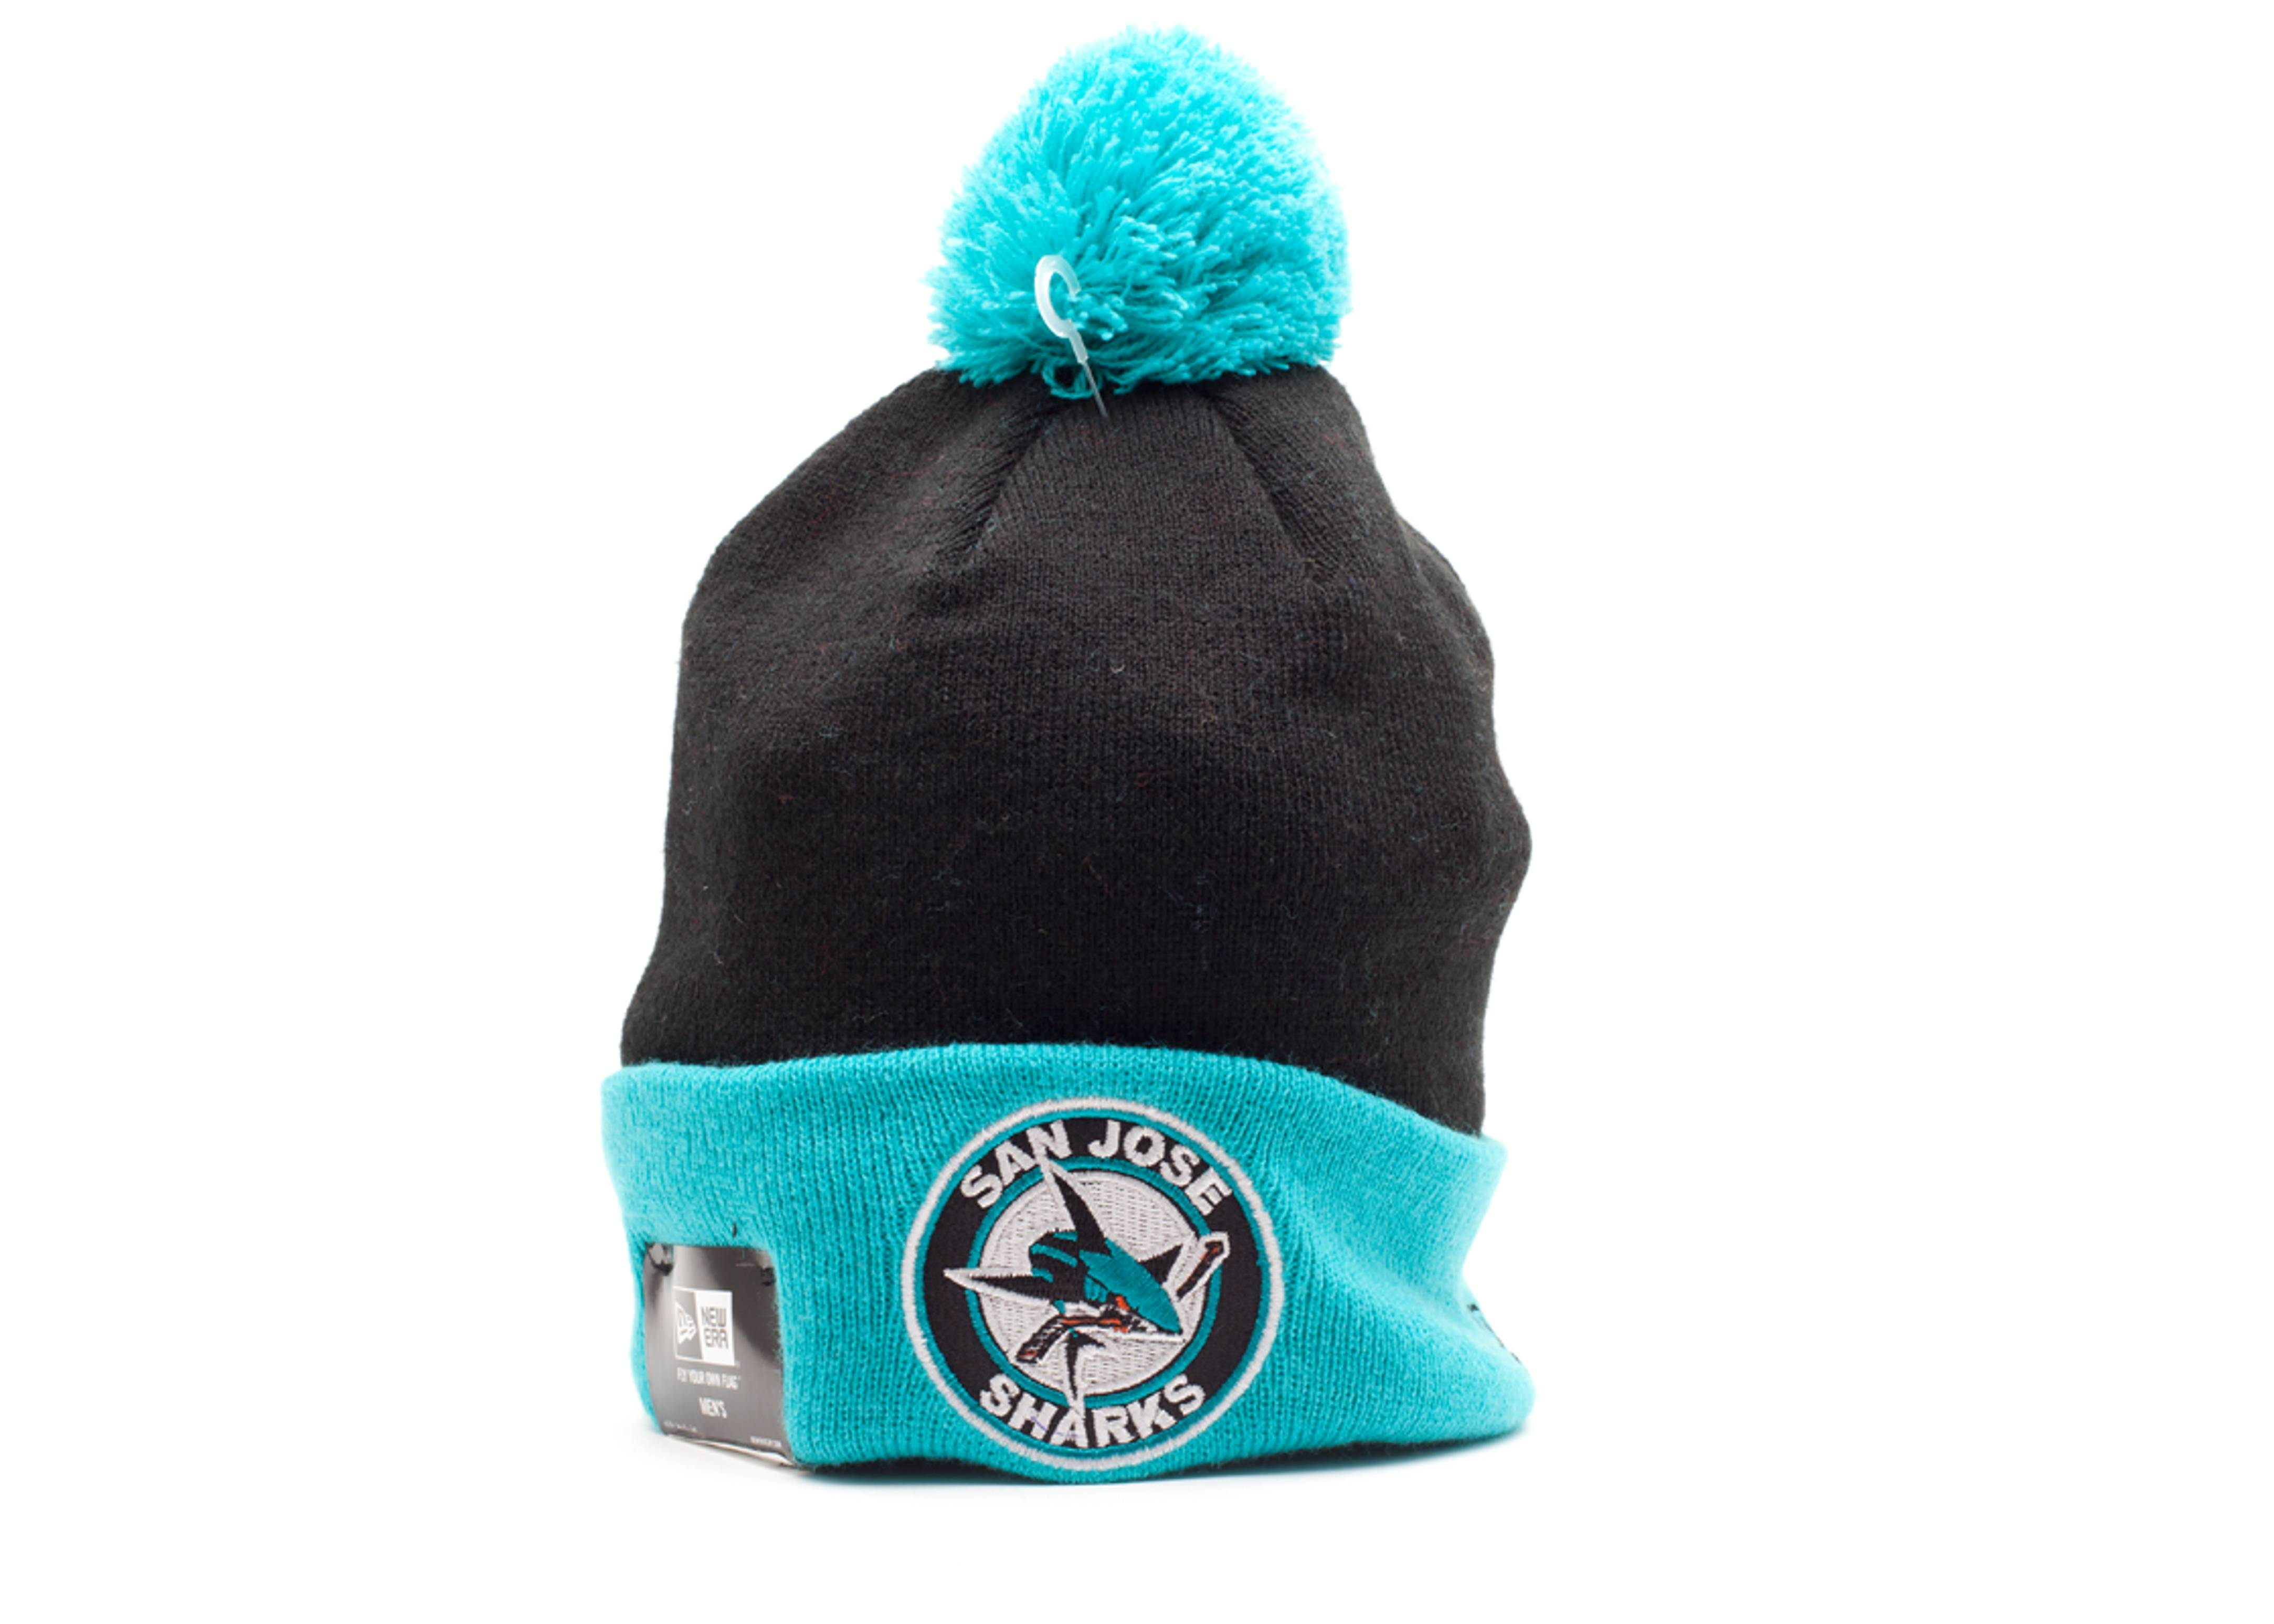 78c789428 San Jose Sharks Cuffed Pom Beanie - New Era - 10418574 - black/teal ...